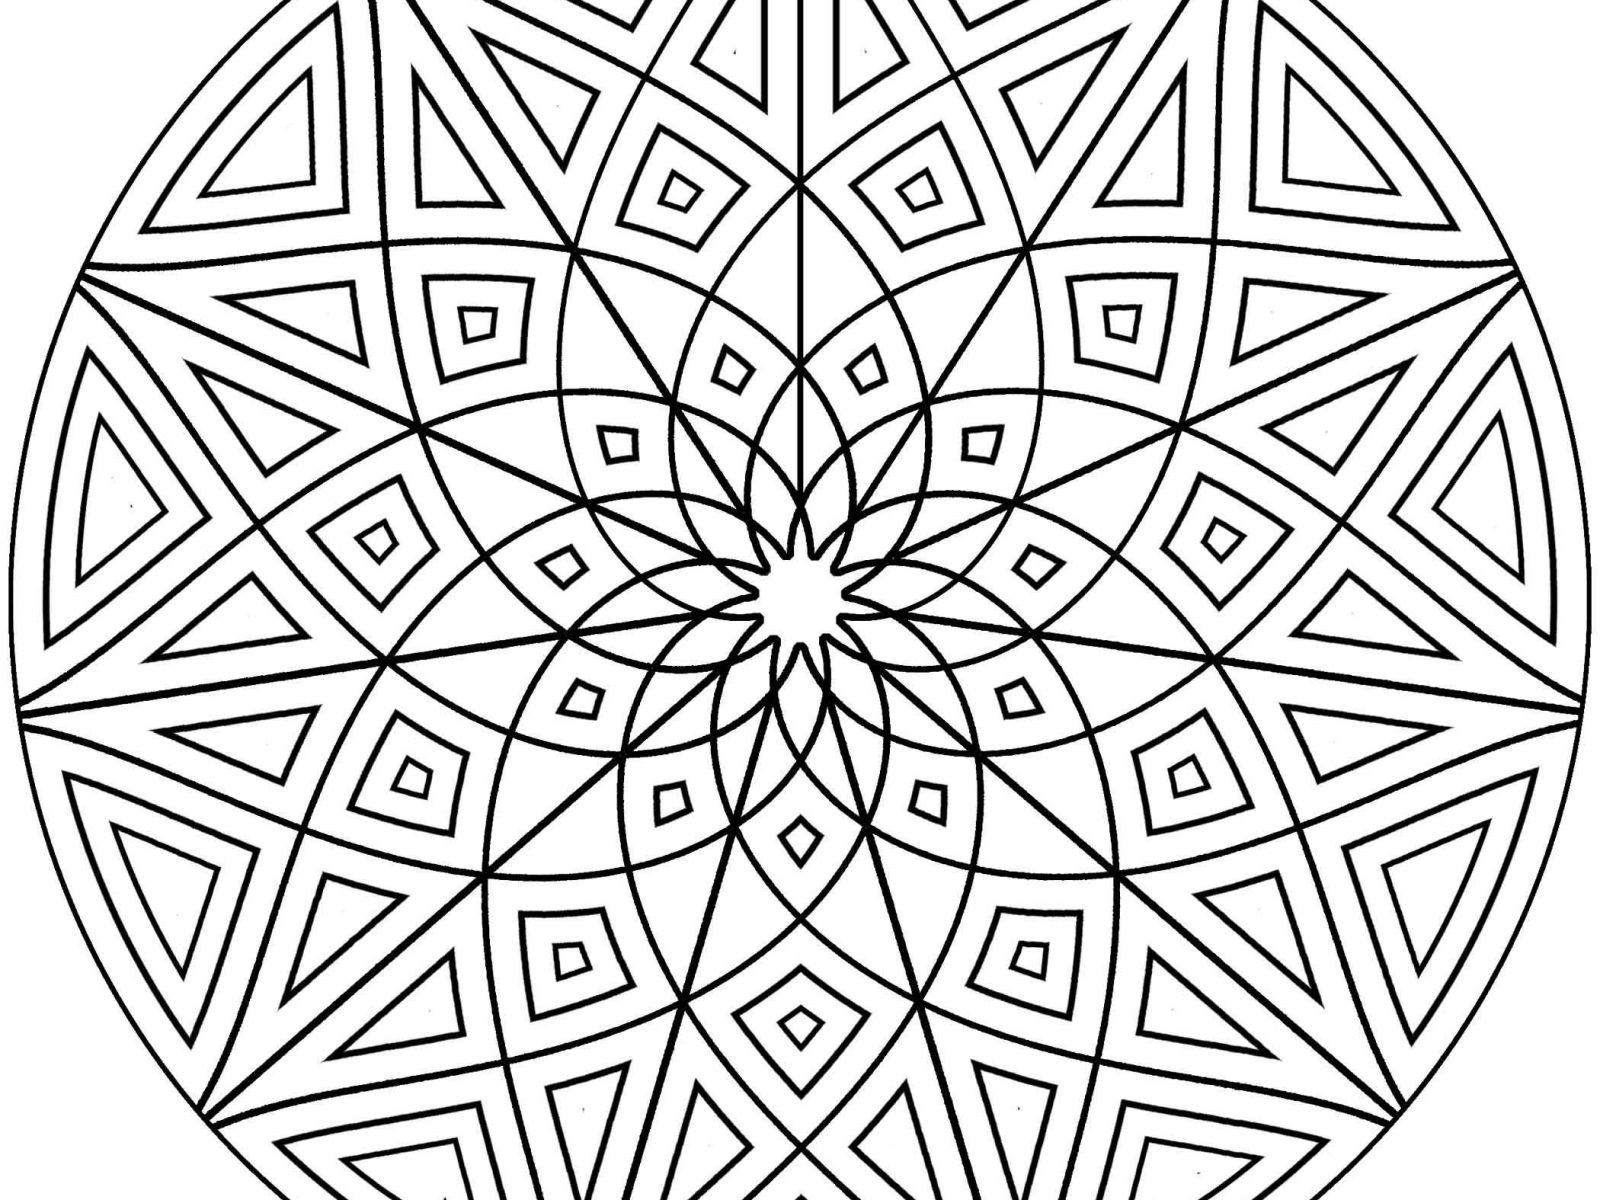 simple patterns to colour simple pattern coloring pages at getcoloringscom free simple colour patterns to